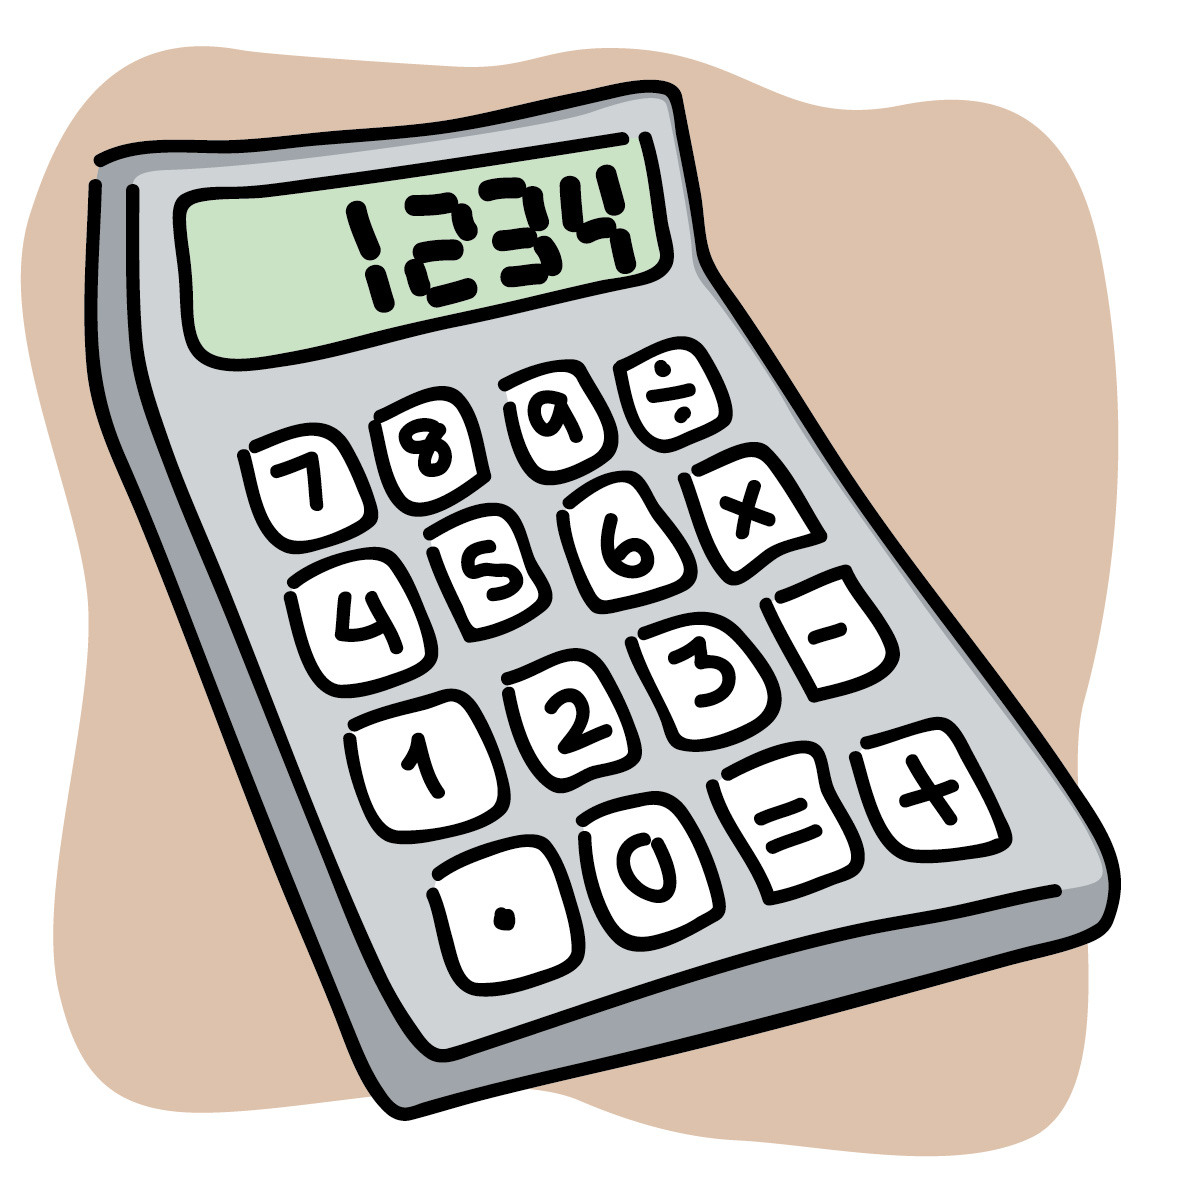 Calculating clipart black and white download Calculation Clipart Group with 64+ items black and white download